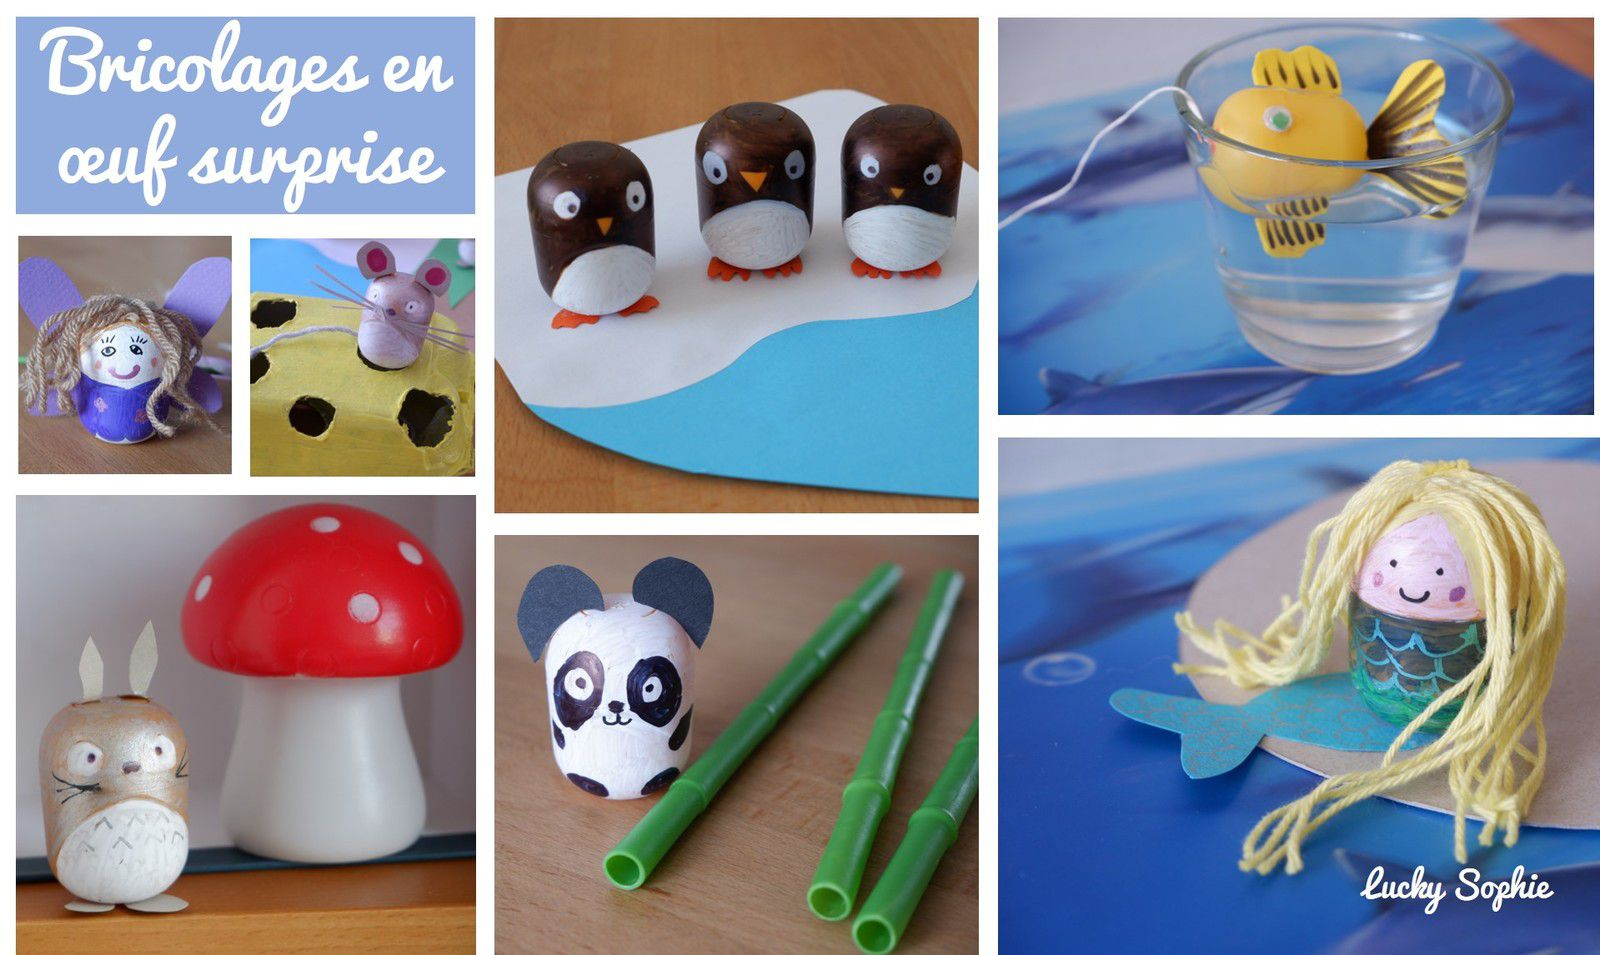 Bricolages en oeuf Kinder surprise